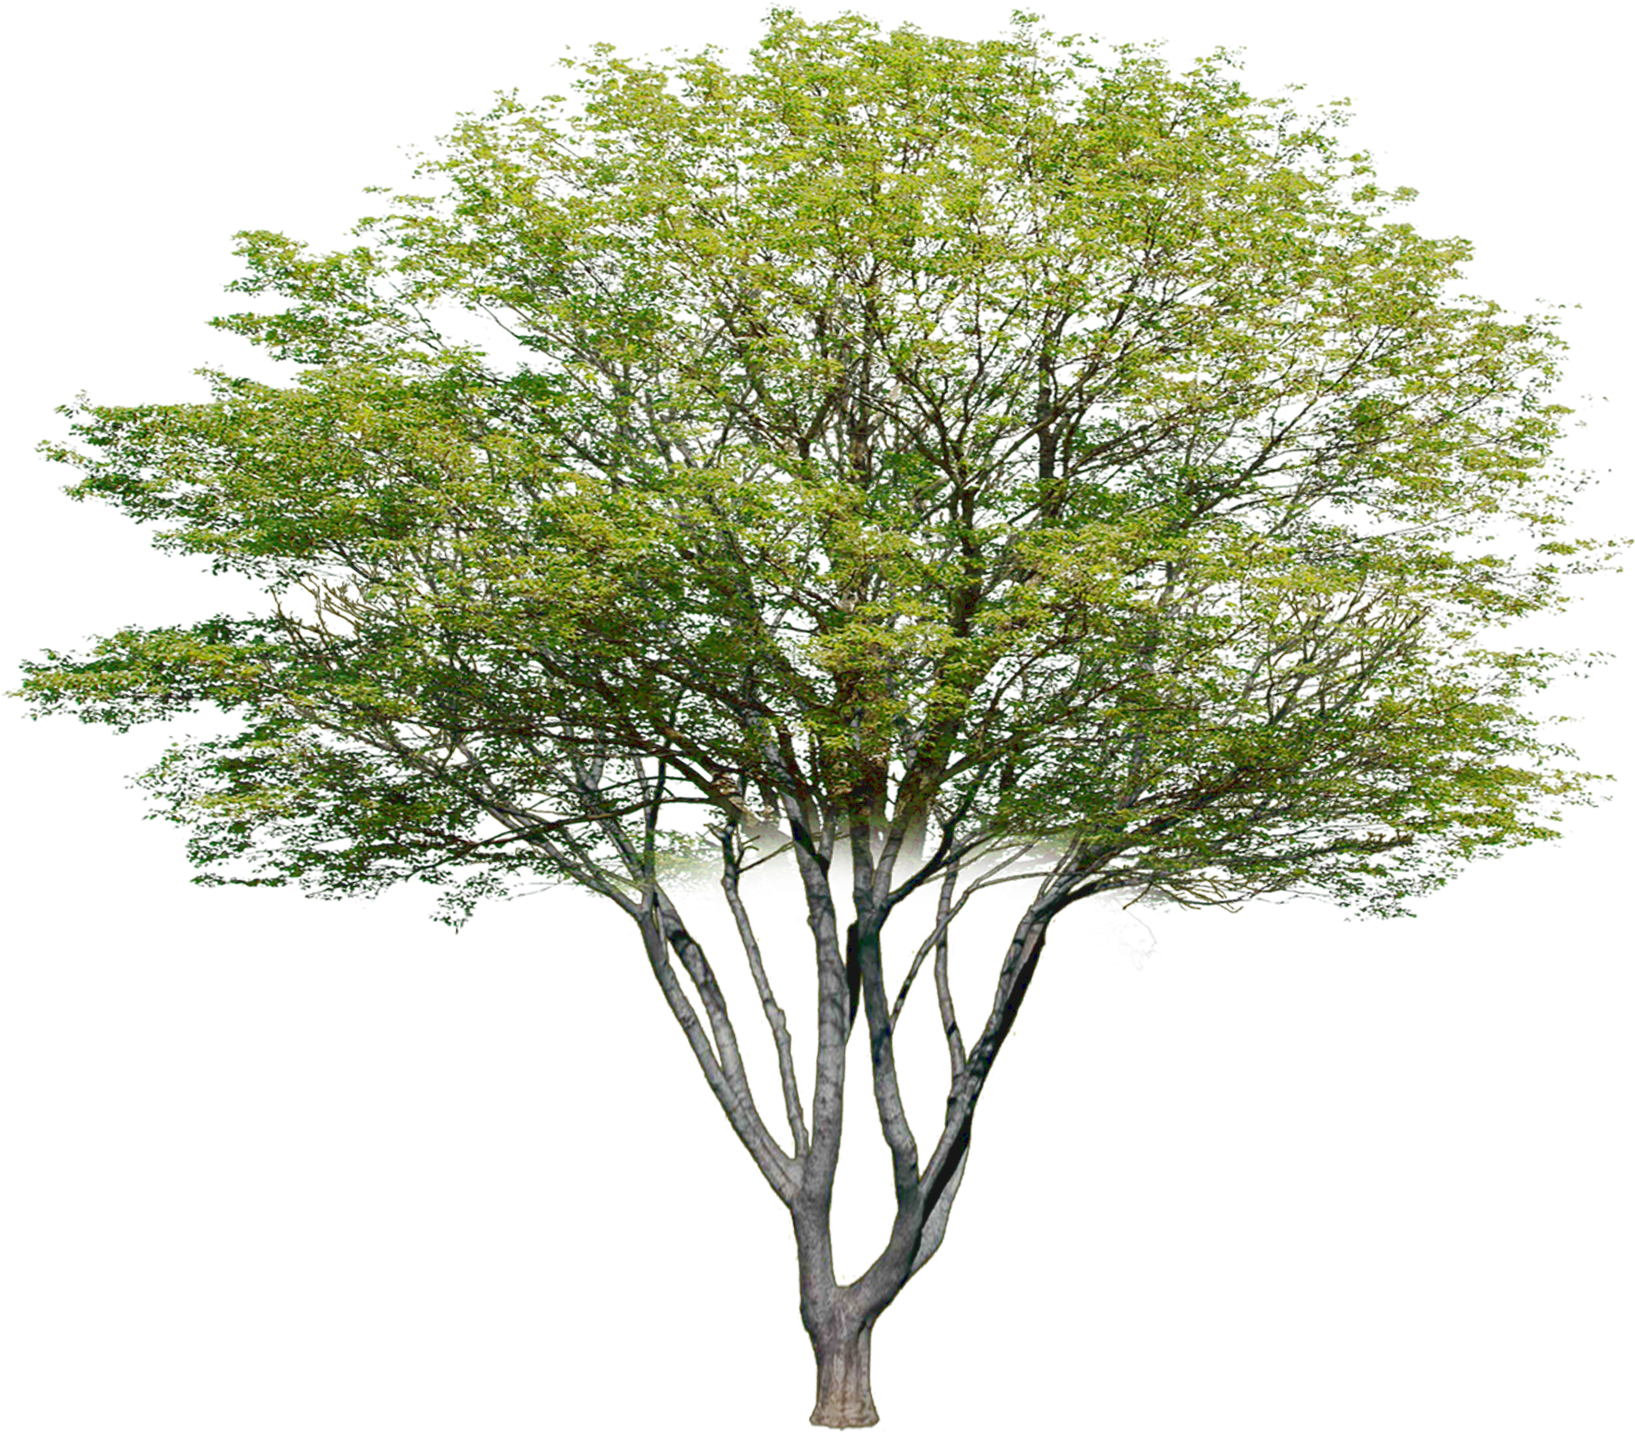 HD Garden Drawing, Plant Drawing, Tree Plan Png, Tree.